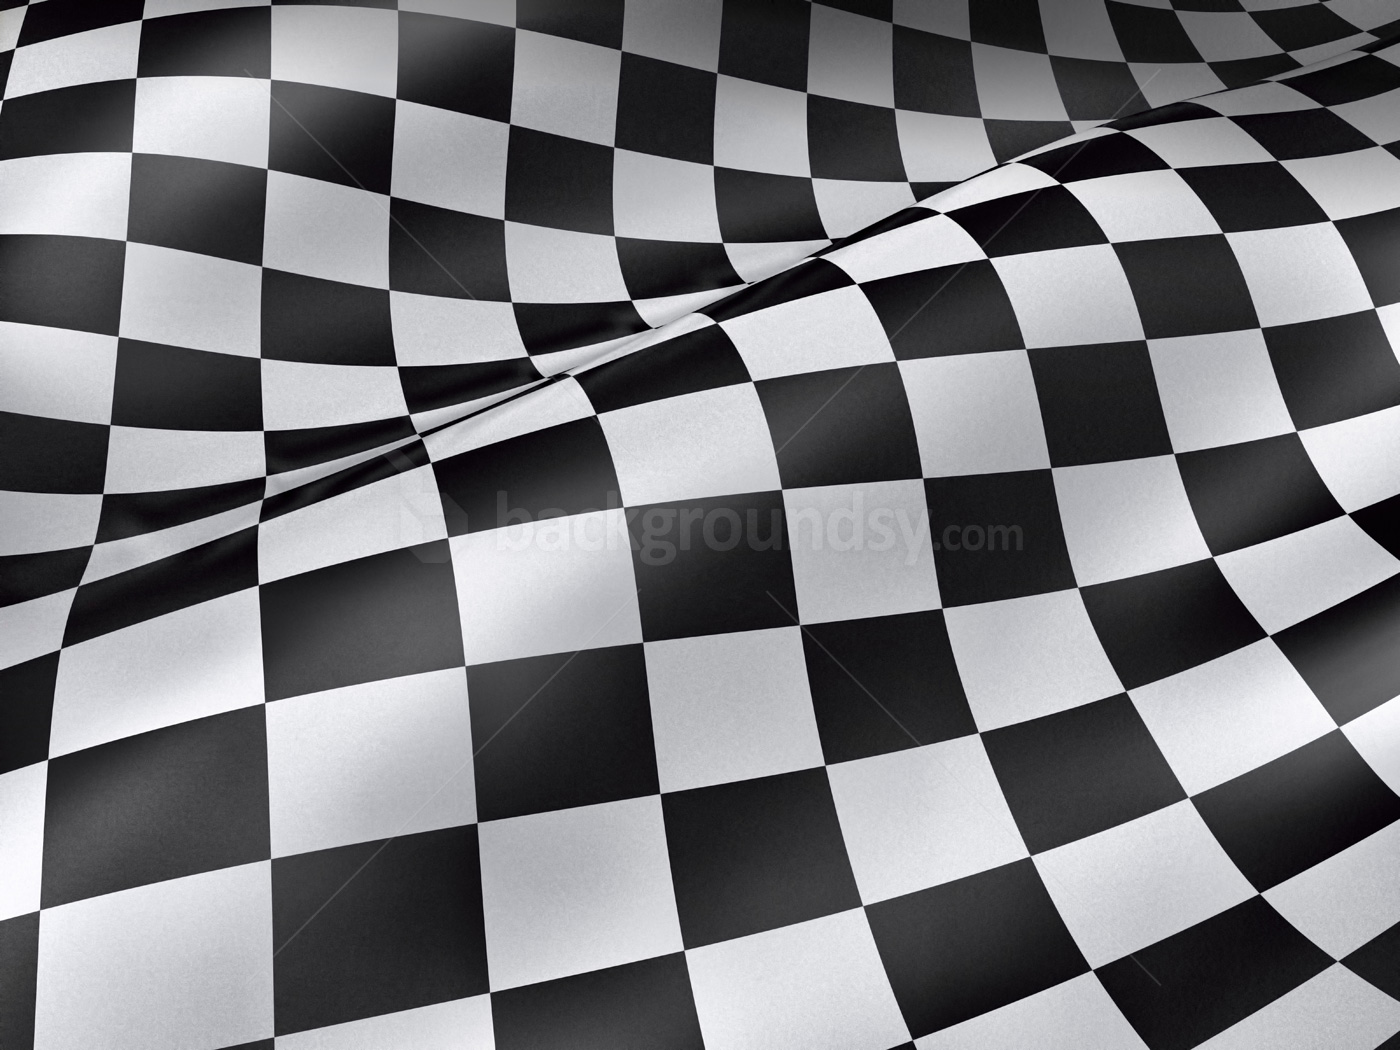 black and white checkerboard wallpaper wallpapersafari. Black Bedroom Furniture Sets. Home Design Ideas